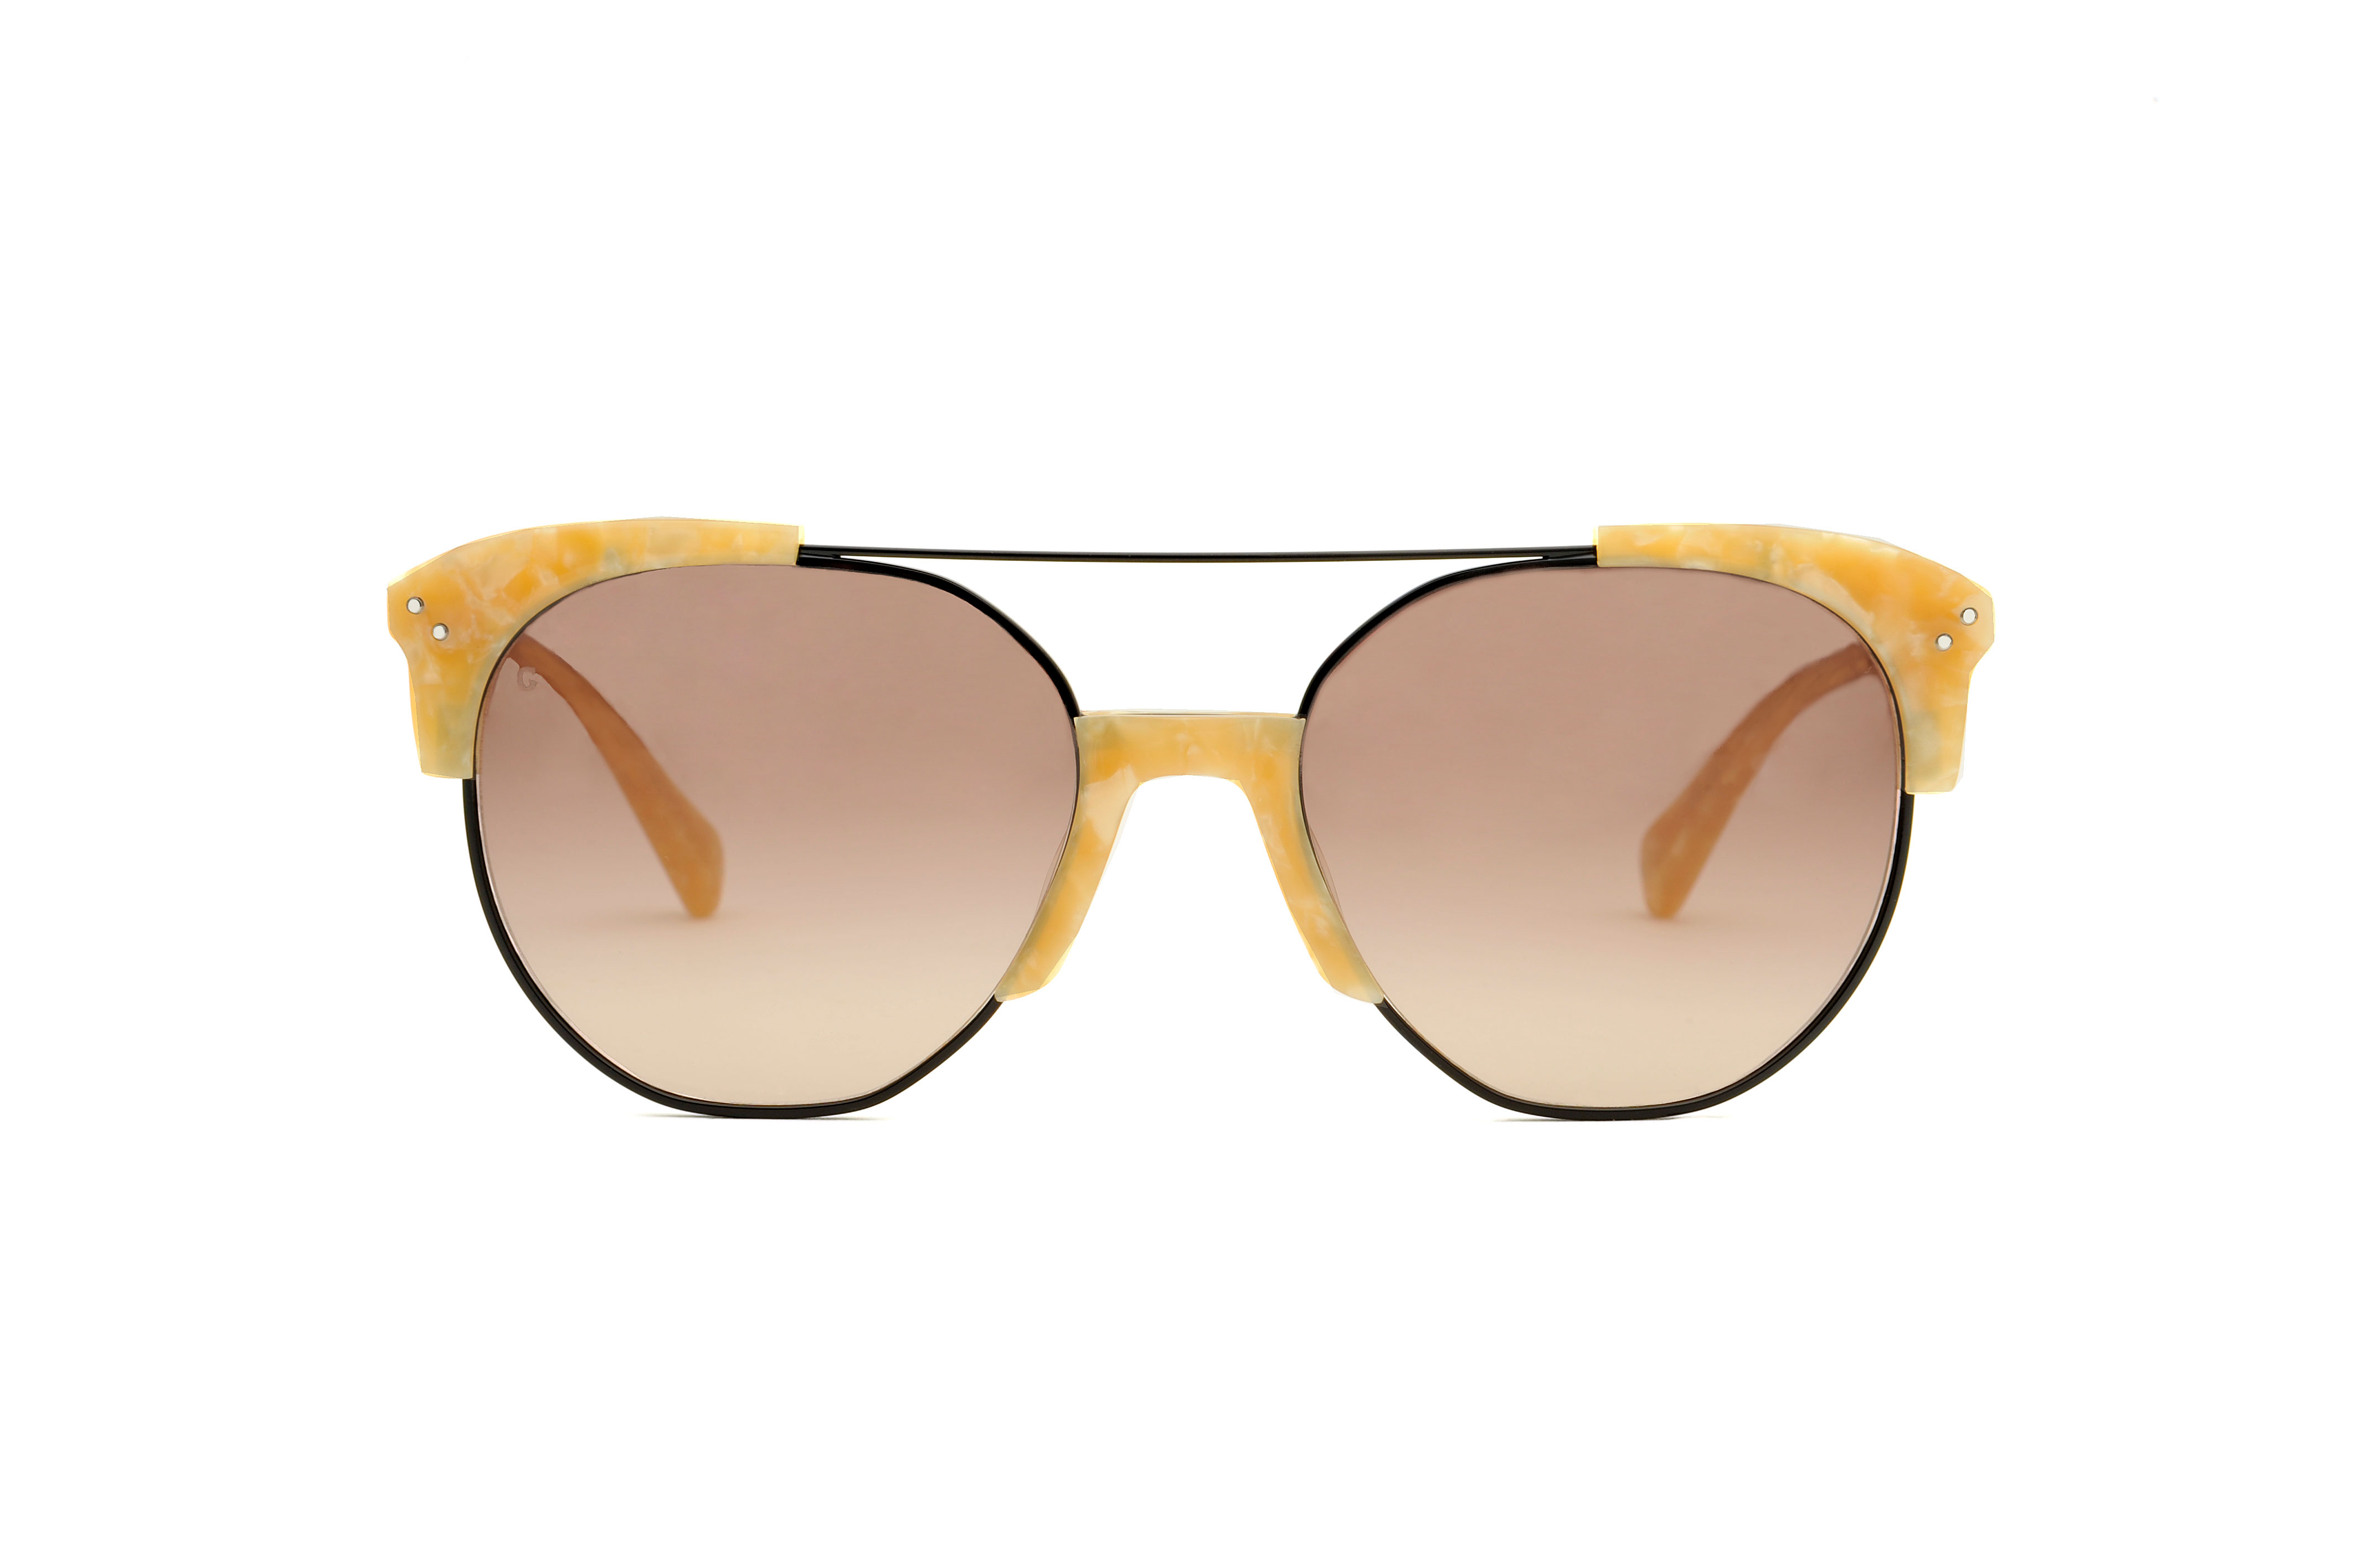 Brixton acetate/metal aviator yellow sunglasses by GIGI Studios